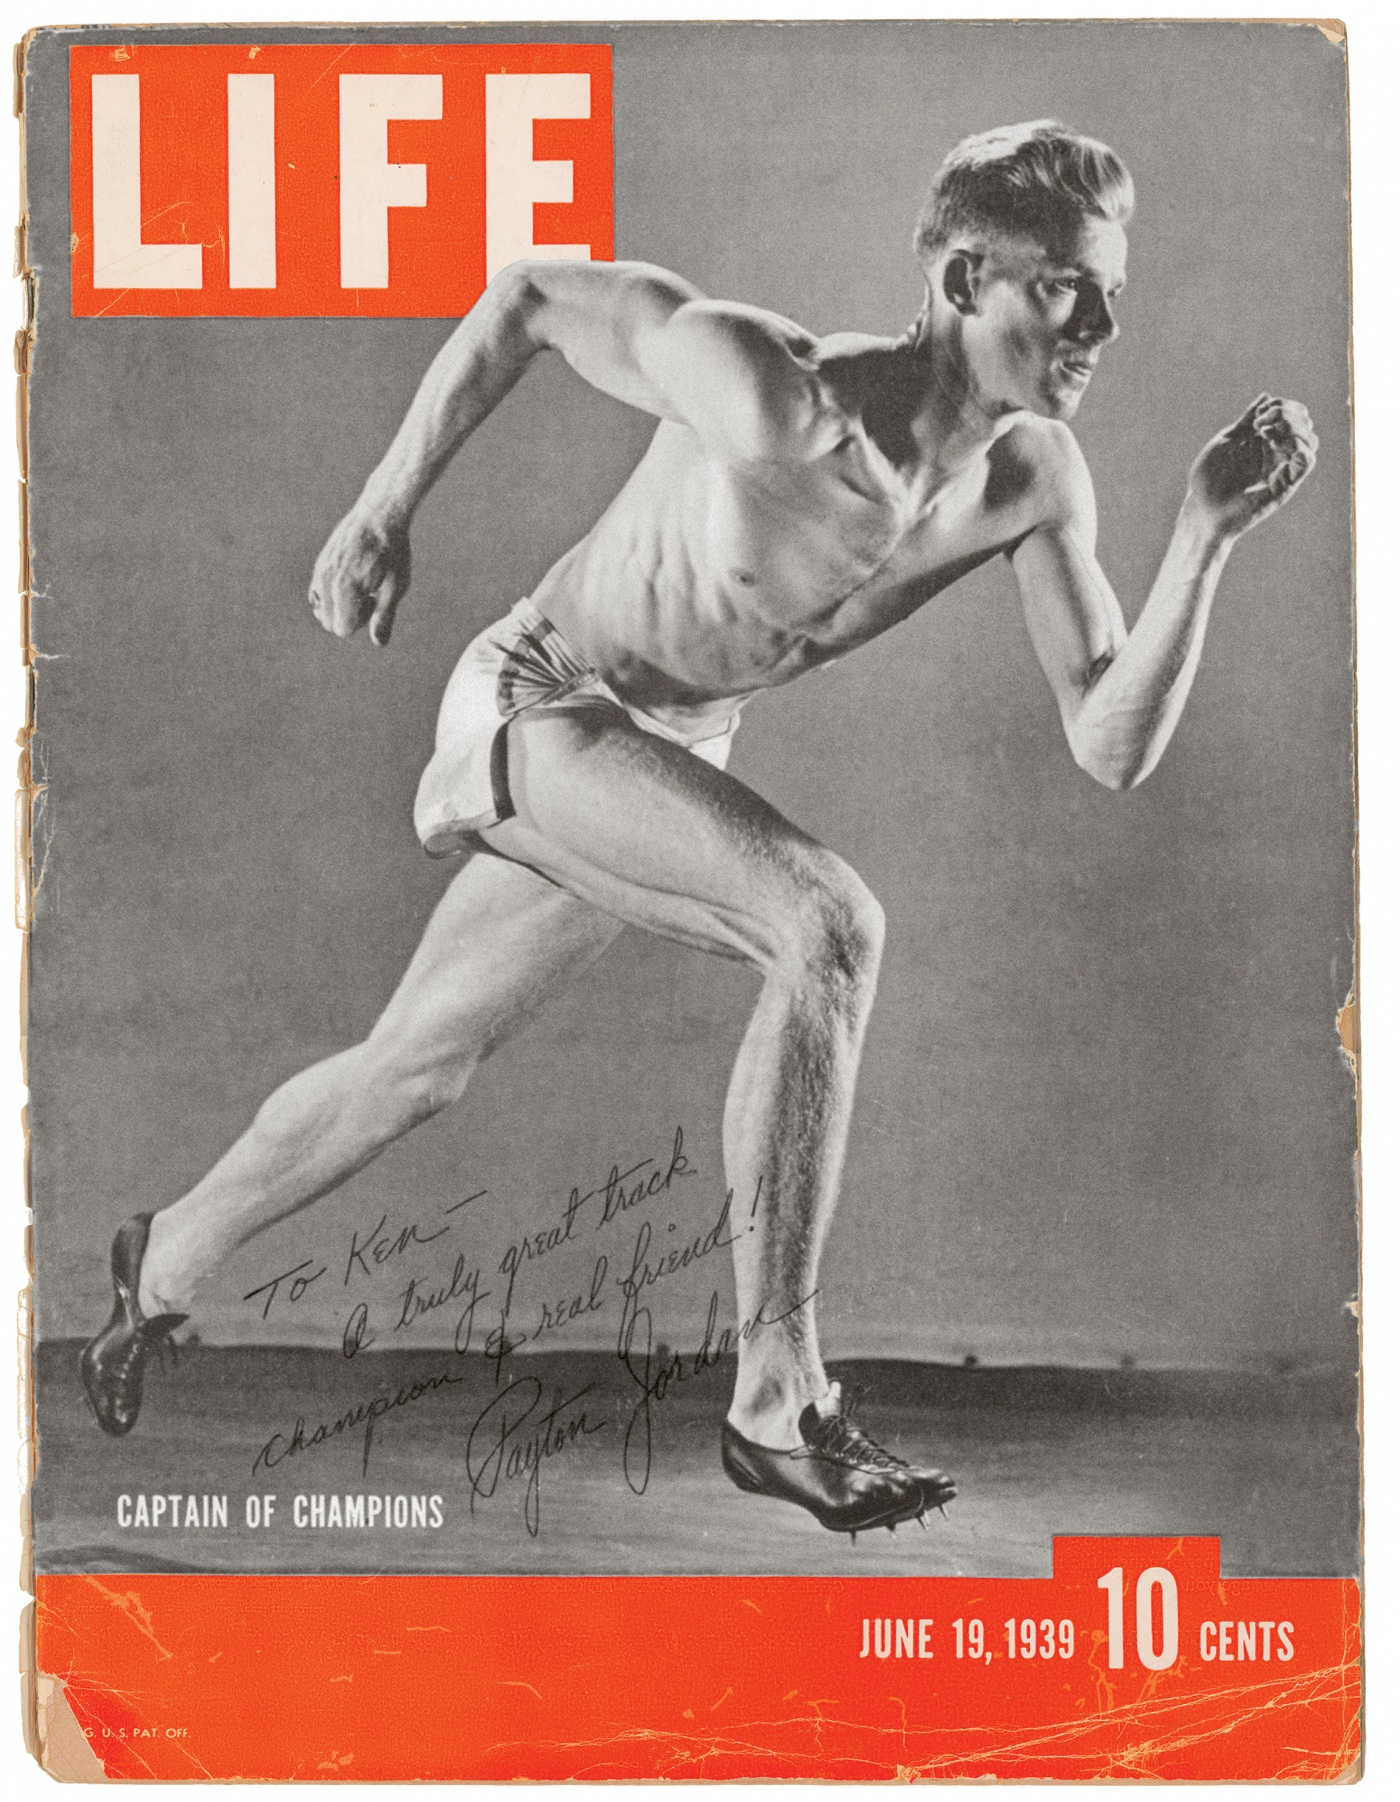 Image of Payton Jordan on the cover of Life